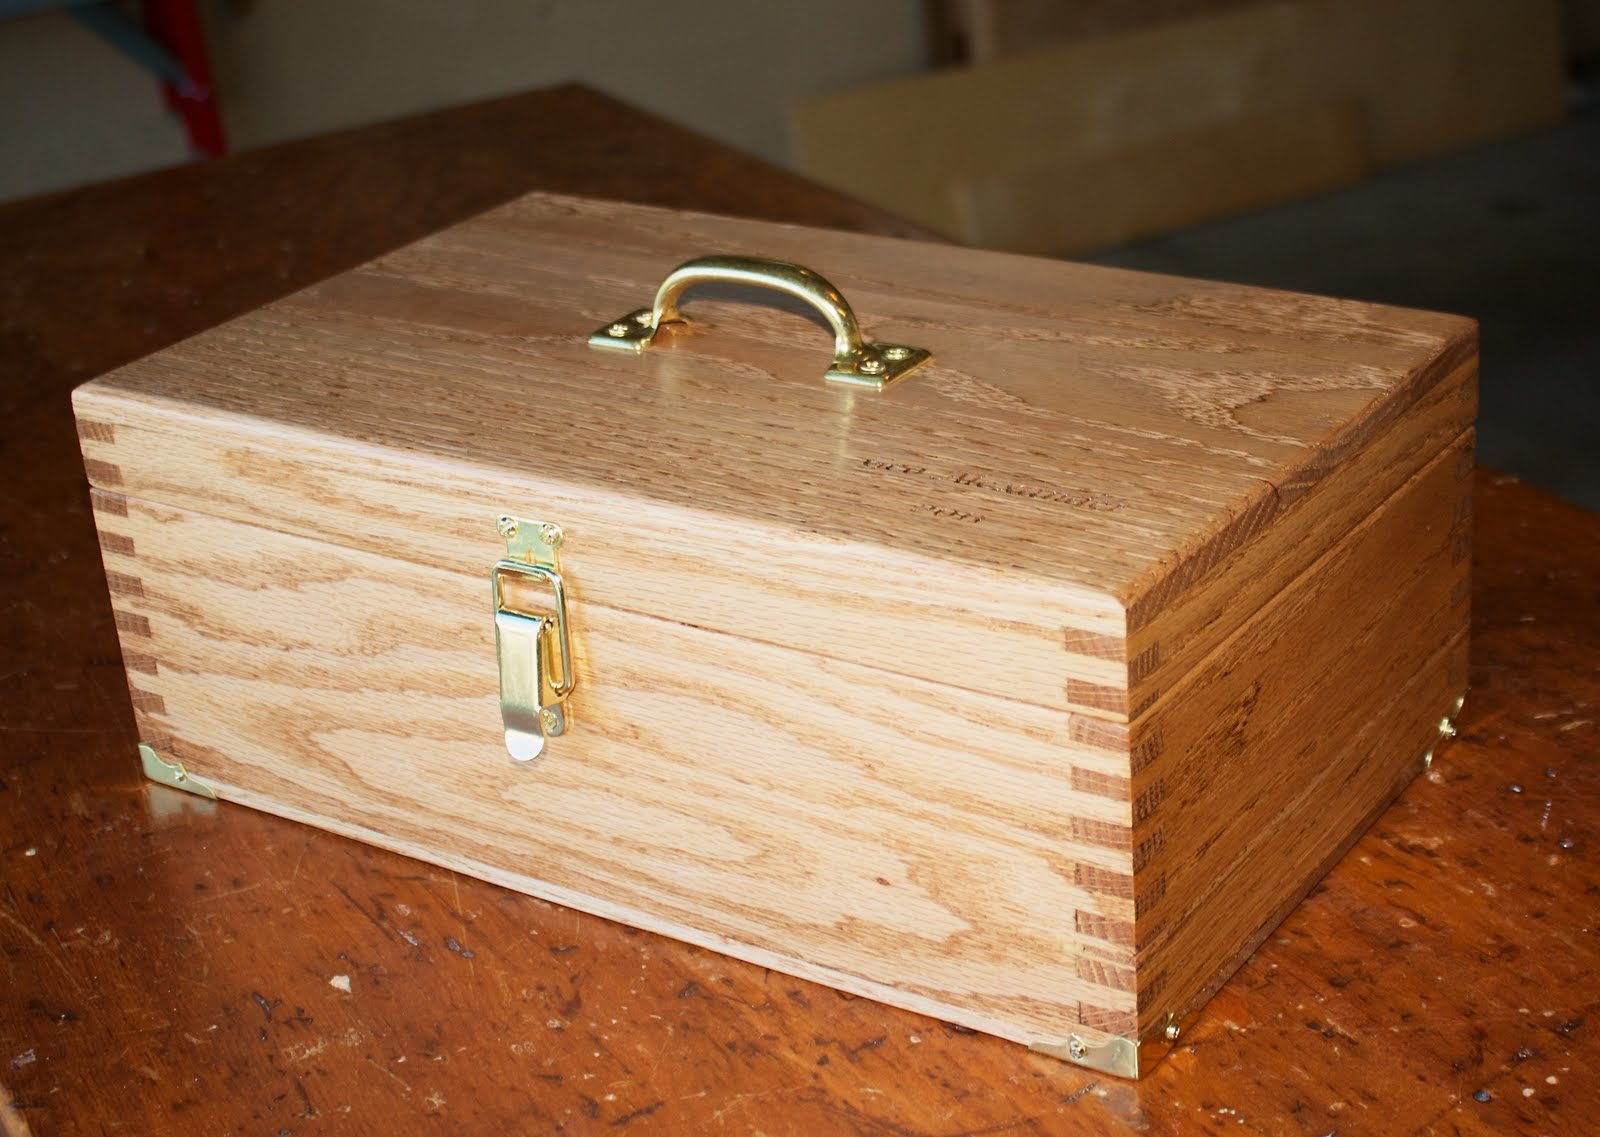 Woodworking wood carving tool box PDF Free Download